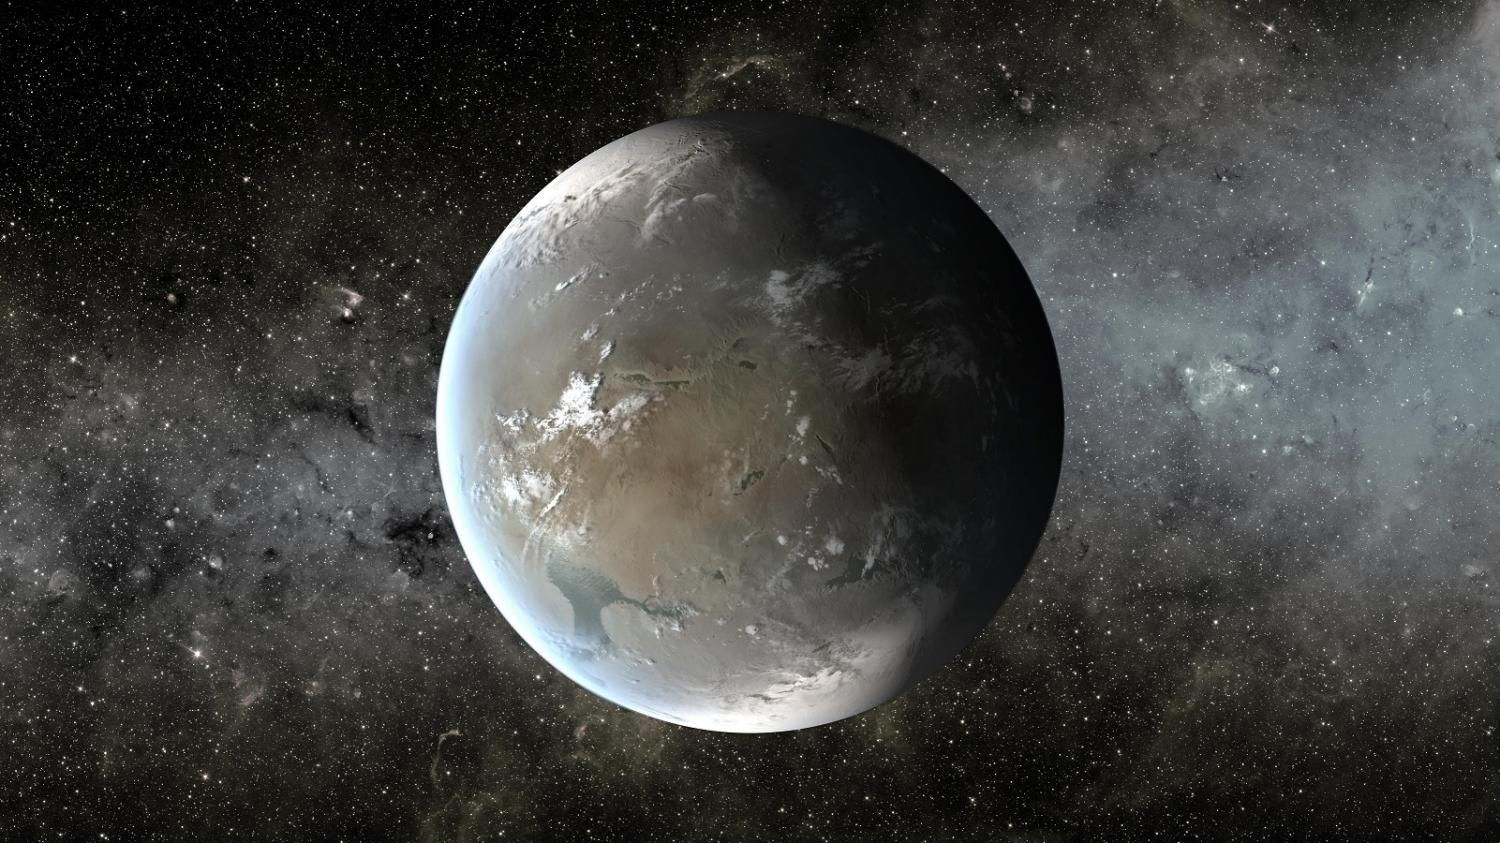 discovery of earth Nasa's spitzer space telescope has revealed the first known system of seven earth-size planets around a single star three of these planets are firmly located in the habitable zone, the area around the parent star where a rocky planet is most likely to have liquid water.